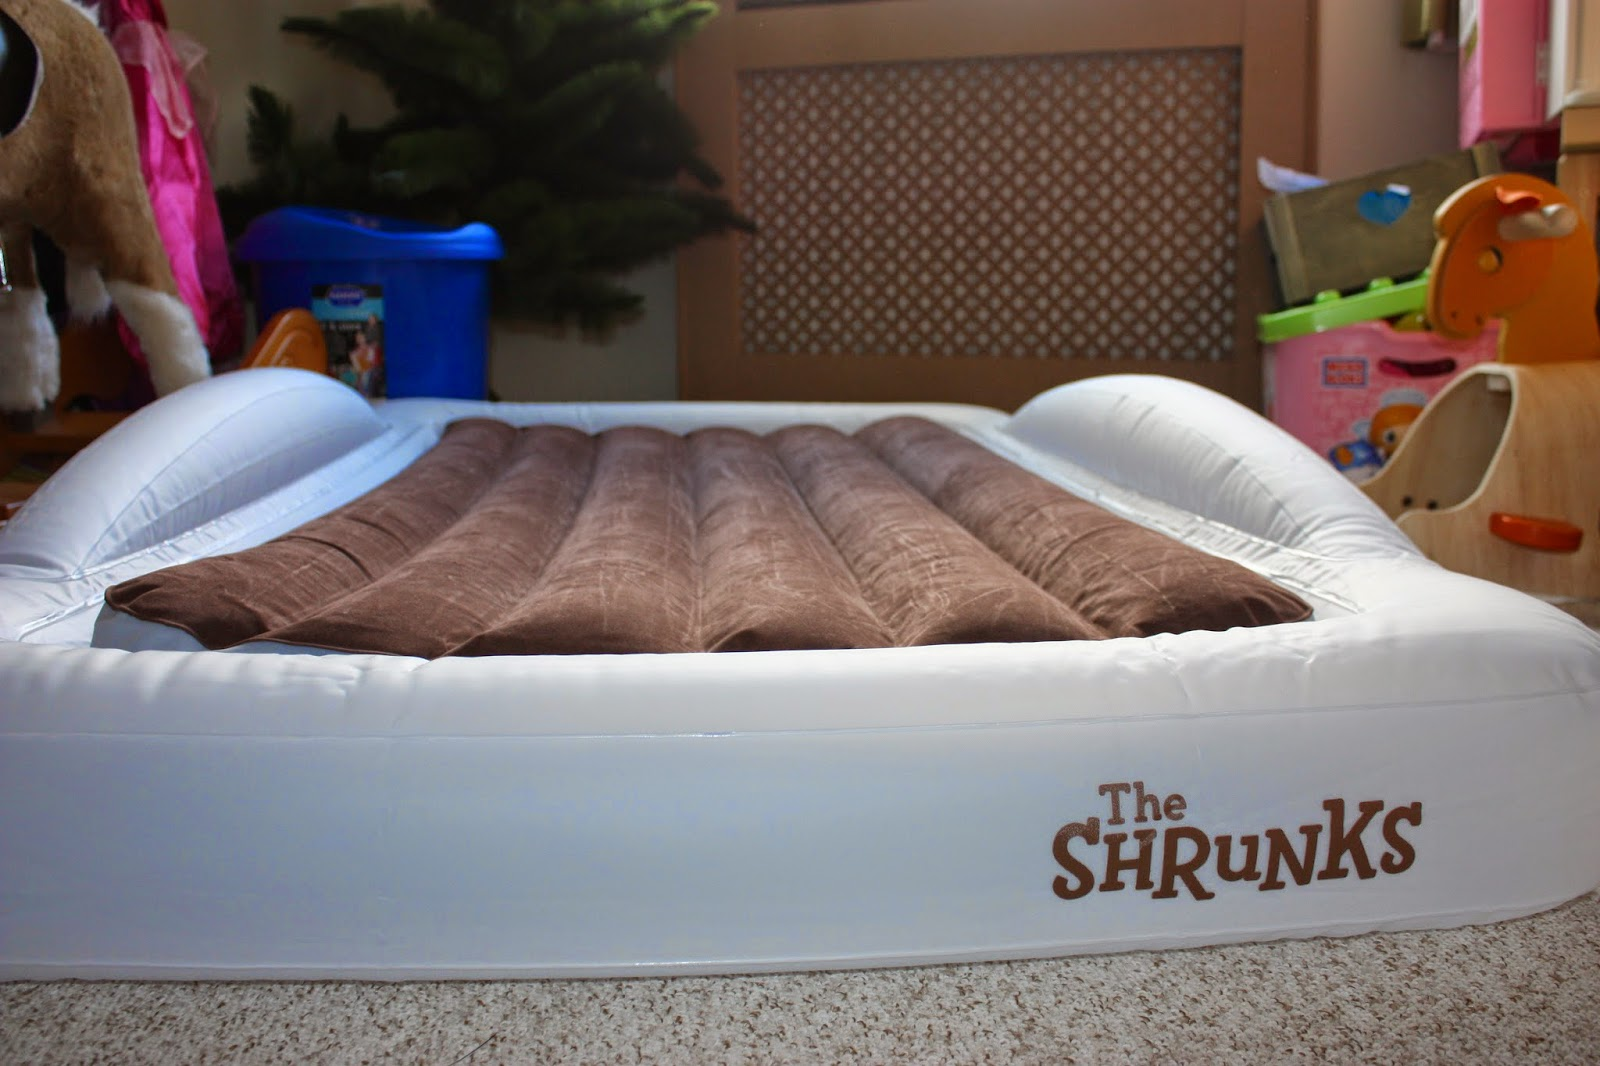 eb360c4076d Mellow Mummy  The Shrunks Toddler Travel Bed Review   Taking life as it  comes.